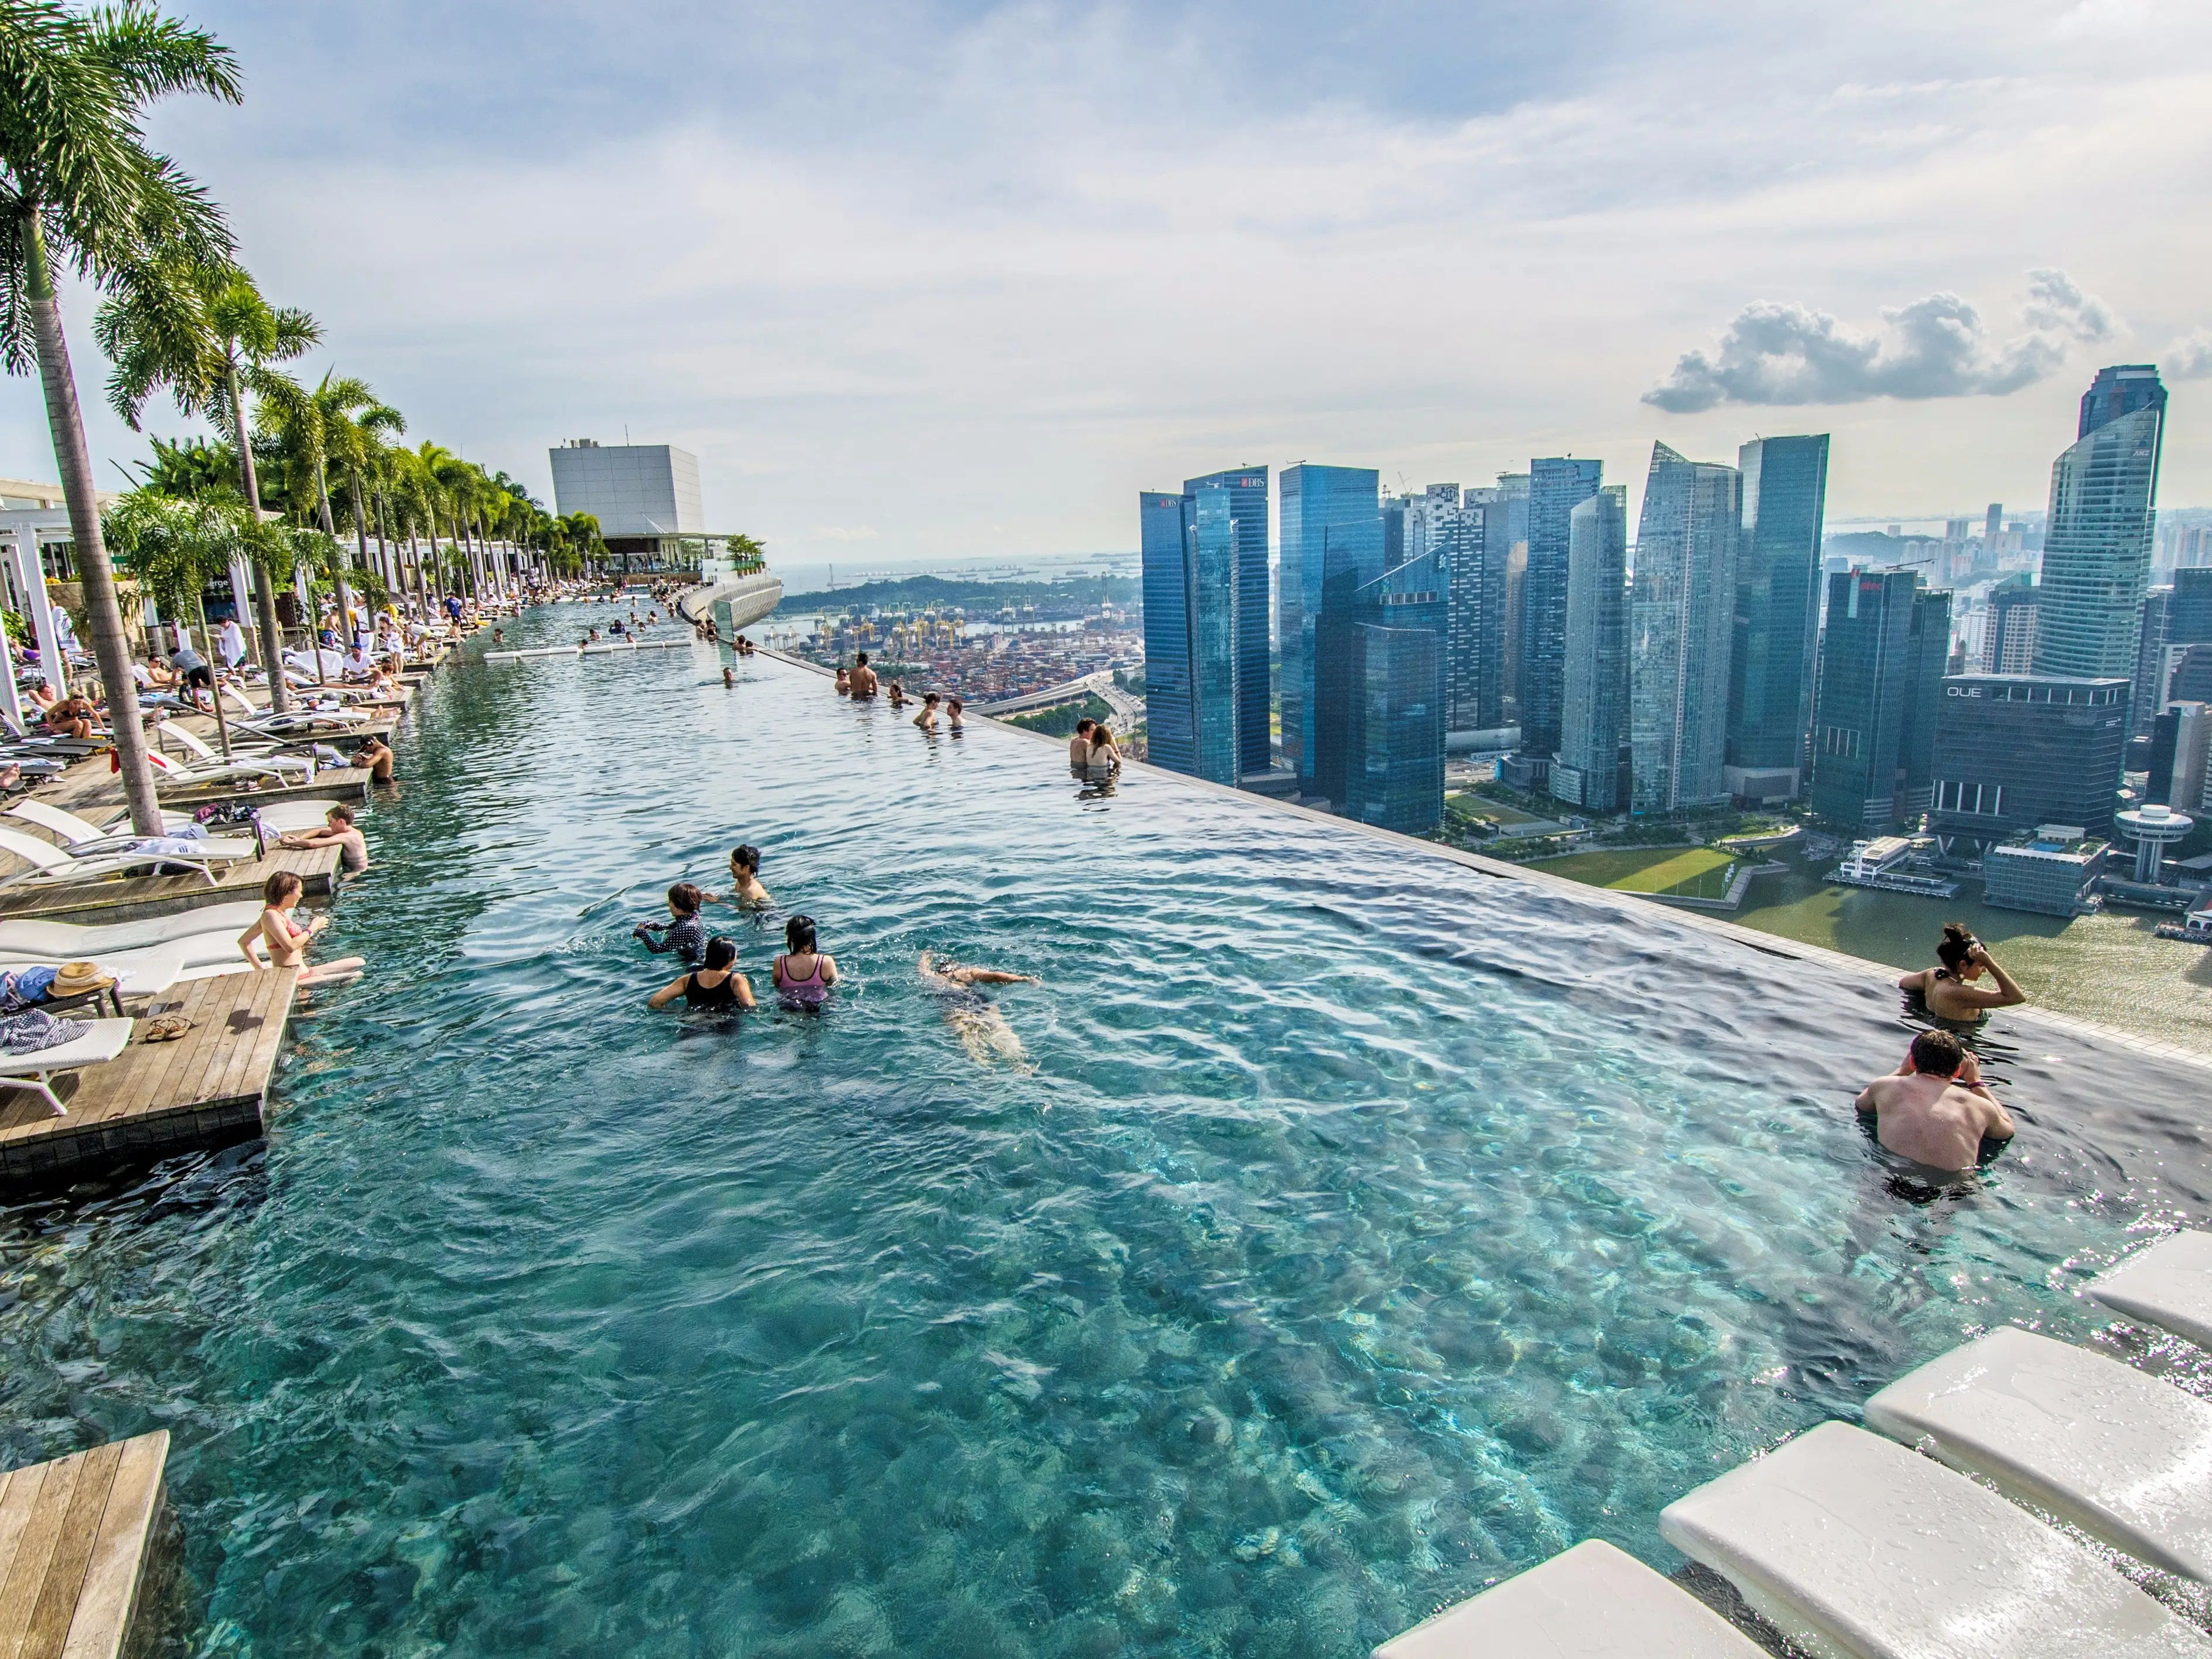 If you're not a fan of ferris wheels, then you might want to skip the Singapore Flyer. Instead, go for some relaxation and a stunning city skyline view at the infinity pool at the Marina Bay Sands Hotel. It's the world's largest infinity pool, and you'll be floating at an impressive 57 floors up.